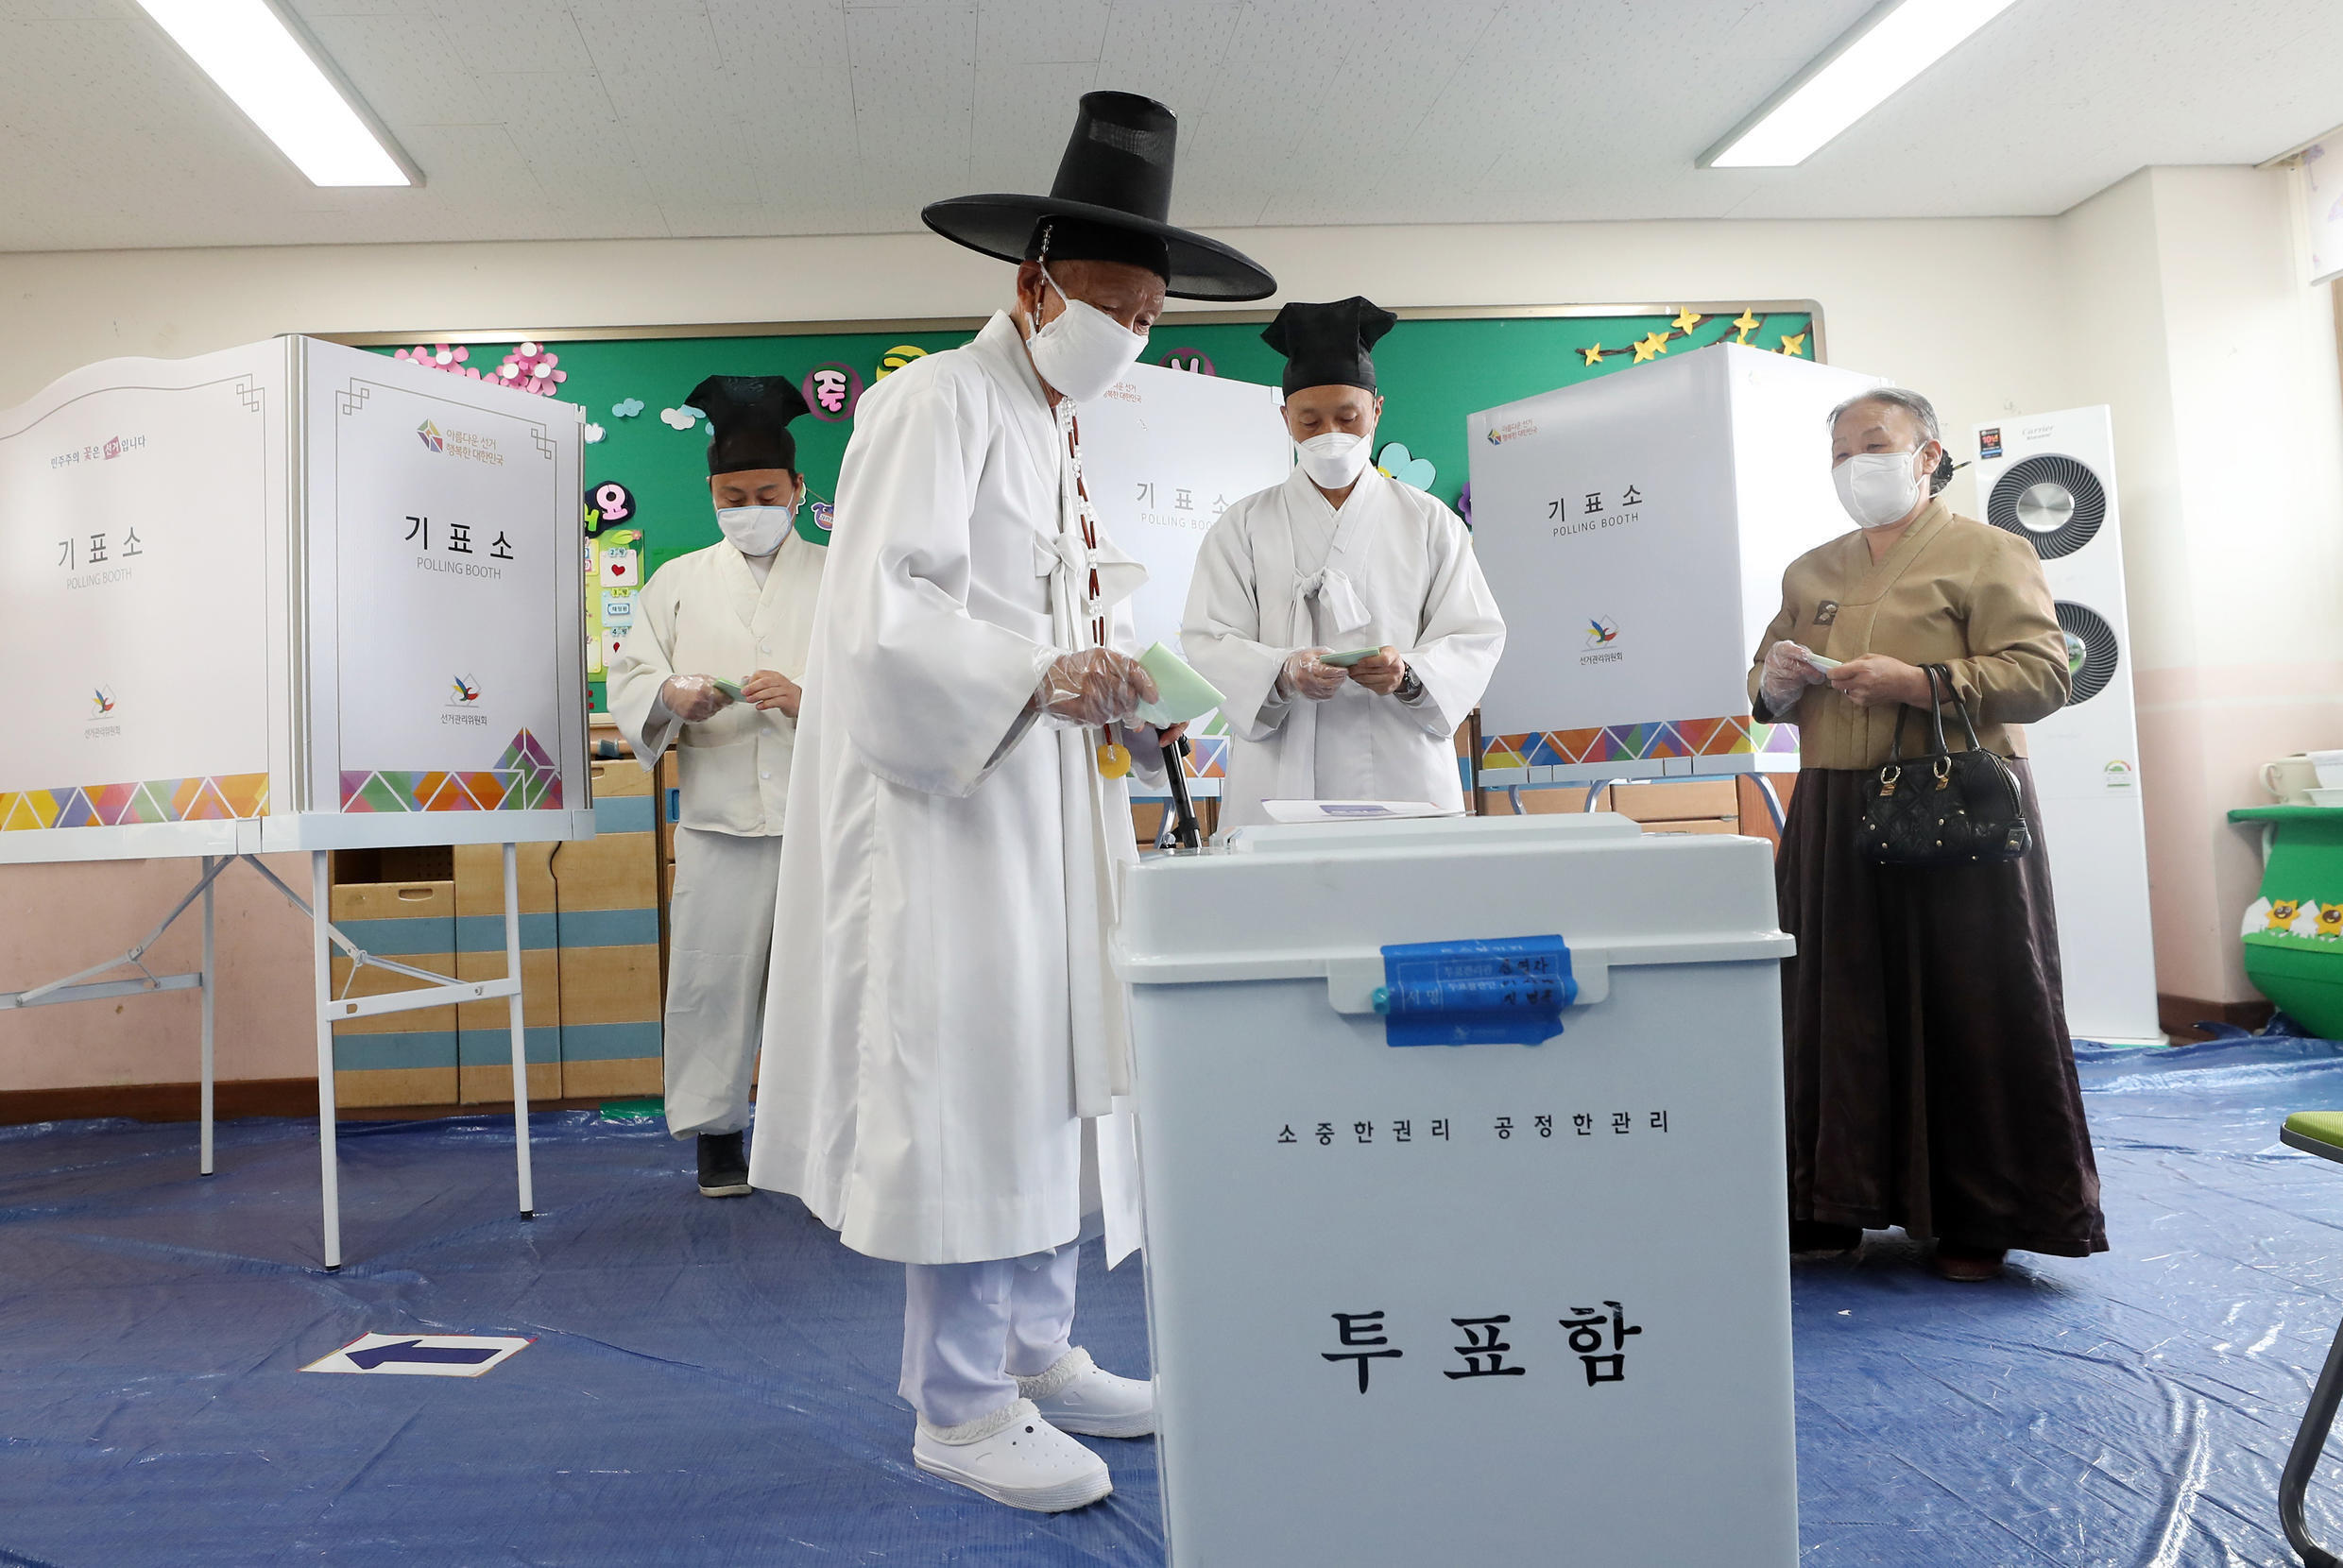 A South Korean in traditional dress casts his ballot